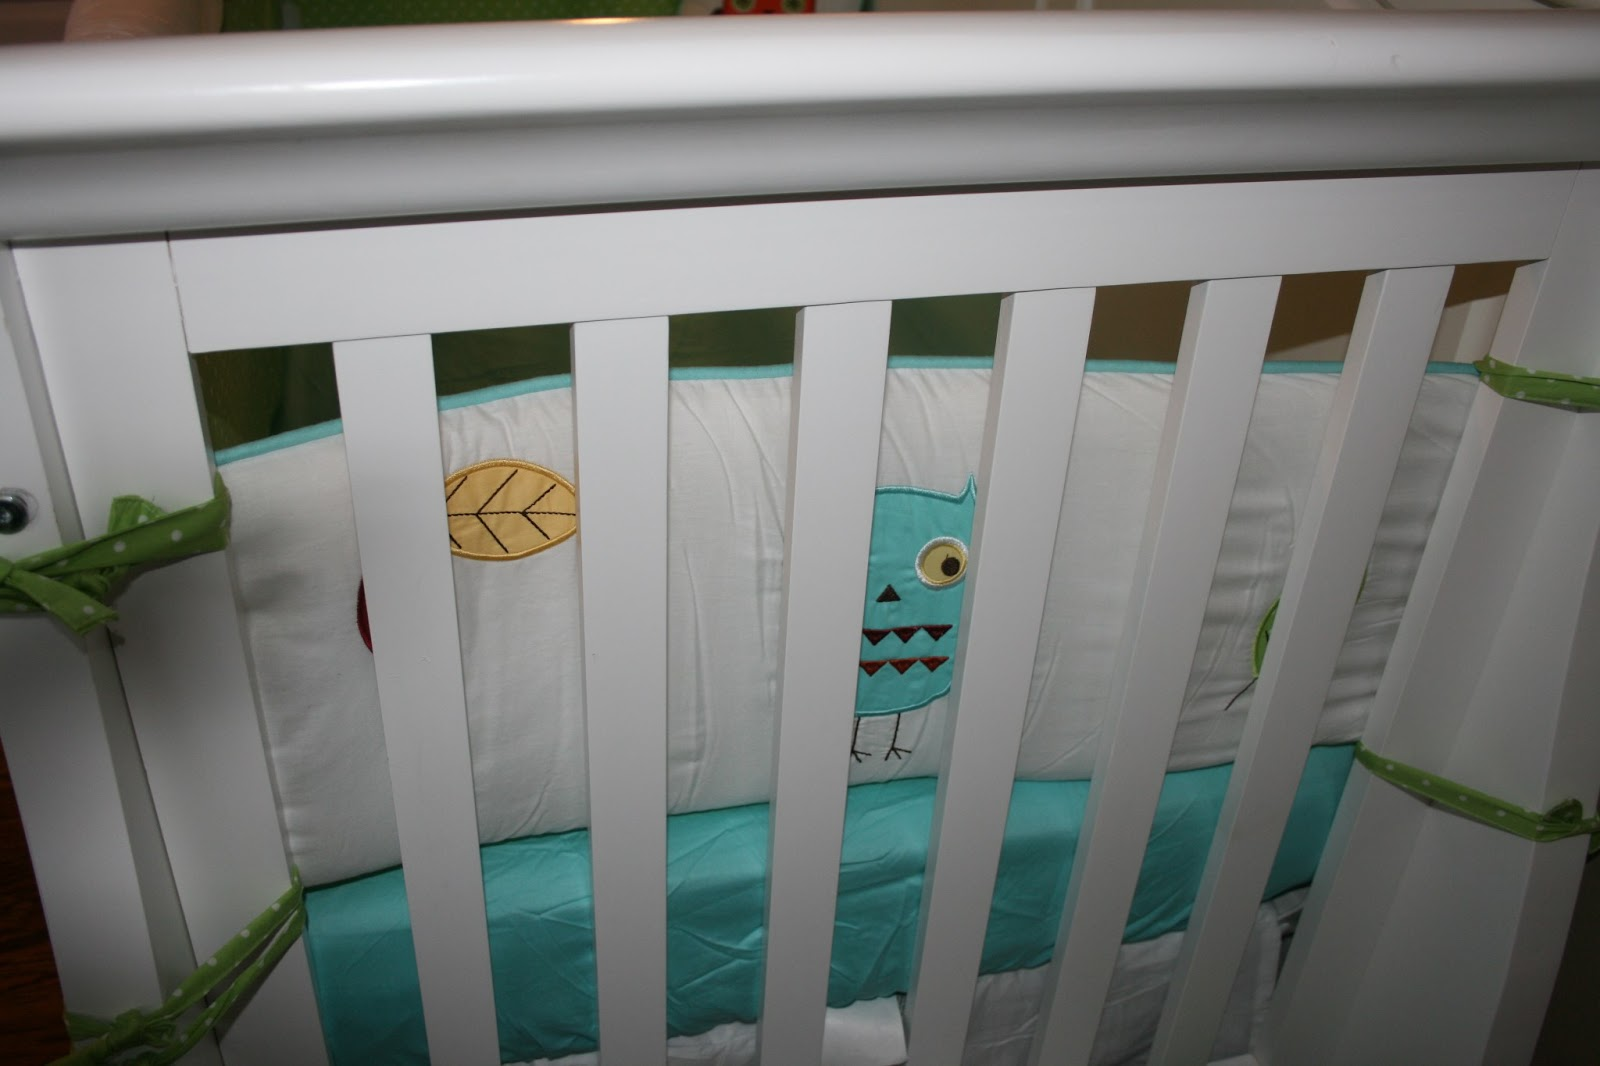 Popular The crib bumper uses crisp white adorned with a scenery of owl and leaf appliqu s The bumper is finished with turquoise piping and lime mini dot printed